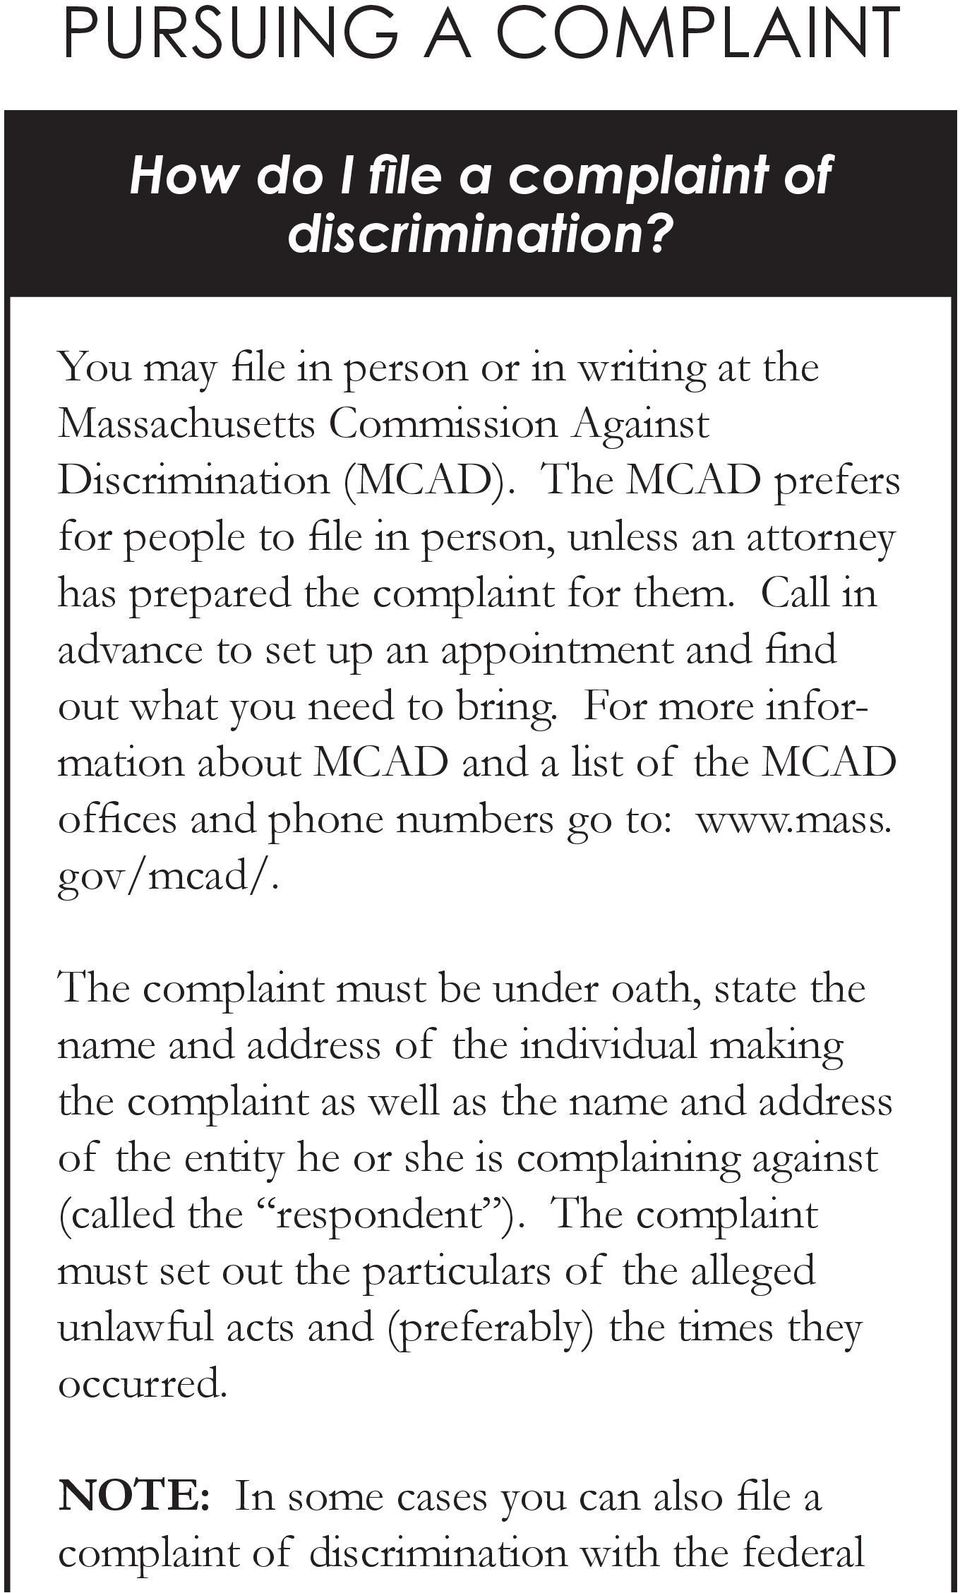 For more information about MCAD and a list of the MCAD offices and phone numbers go to: www.mass. gov/mcad/.